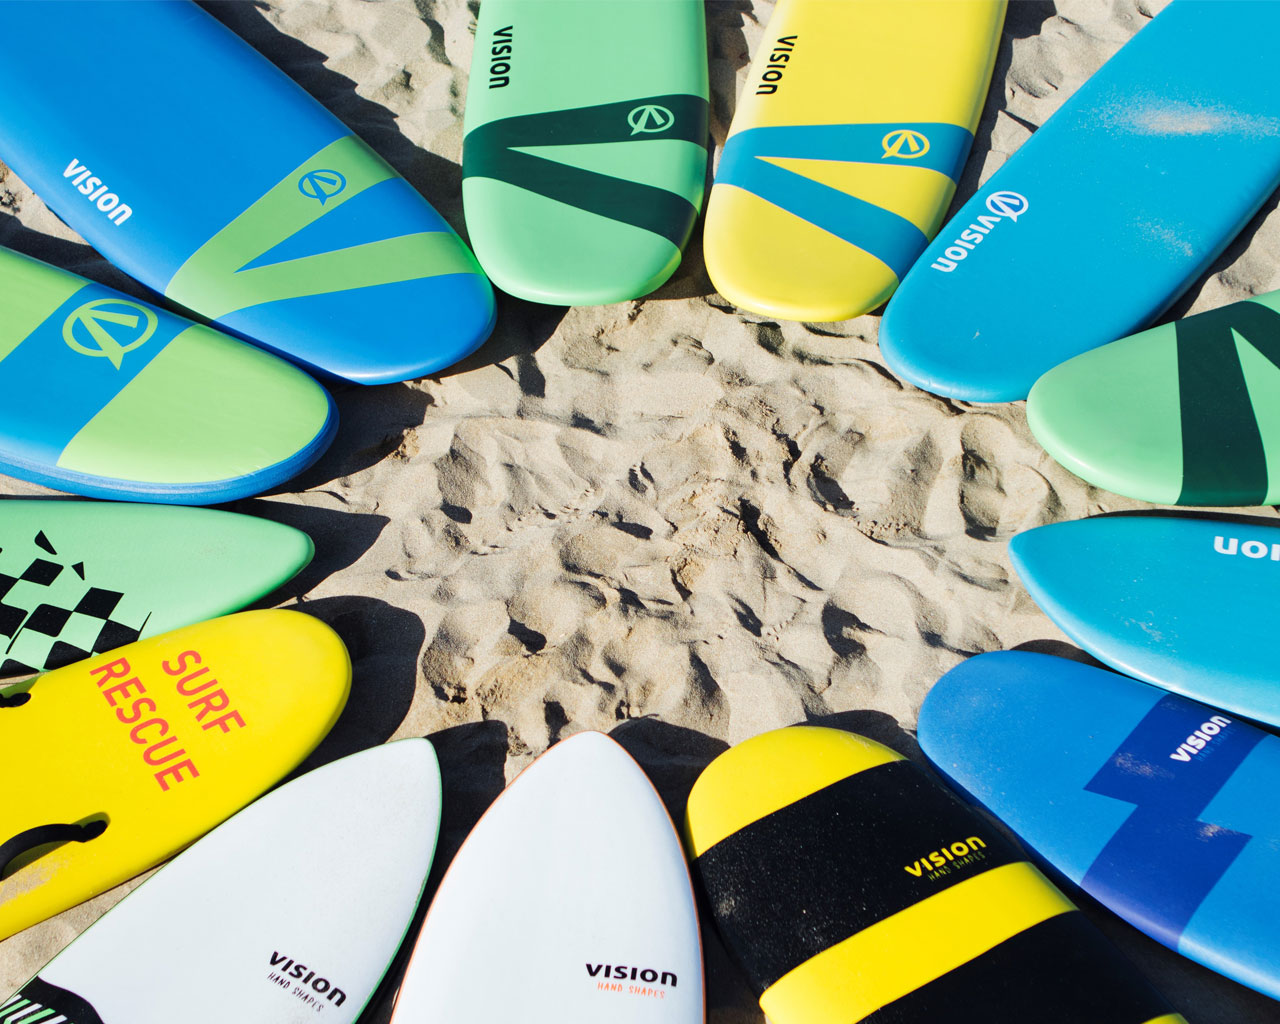 vision-surf-boards